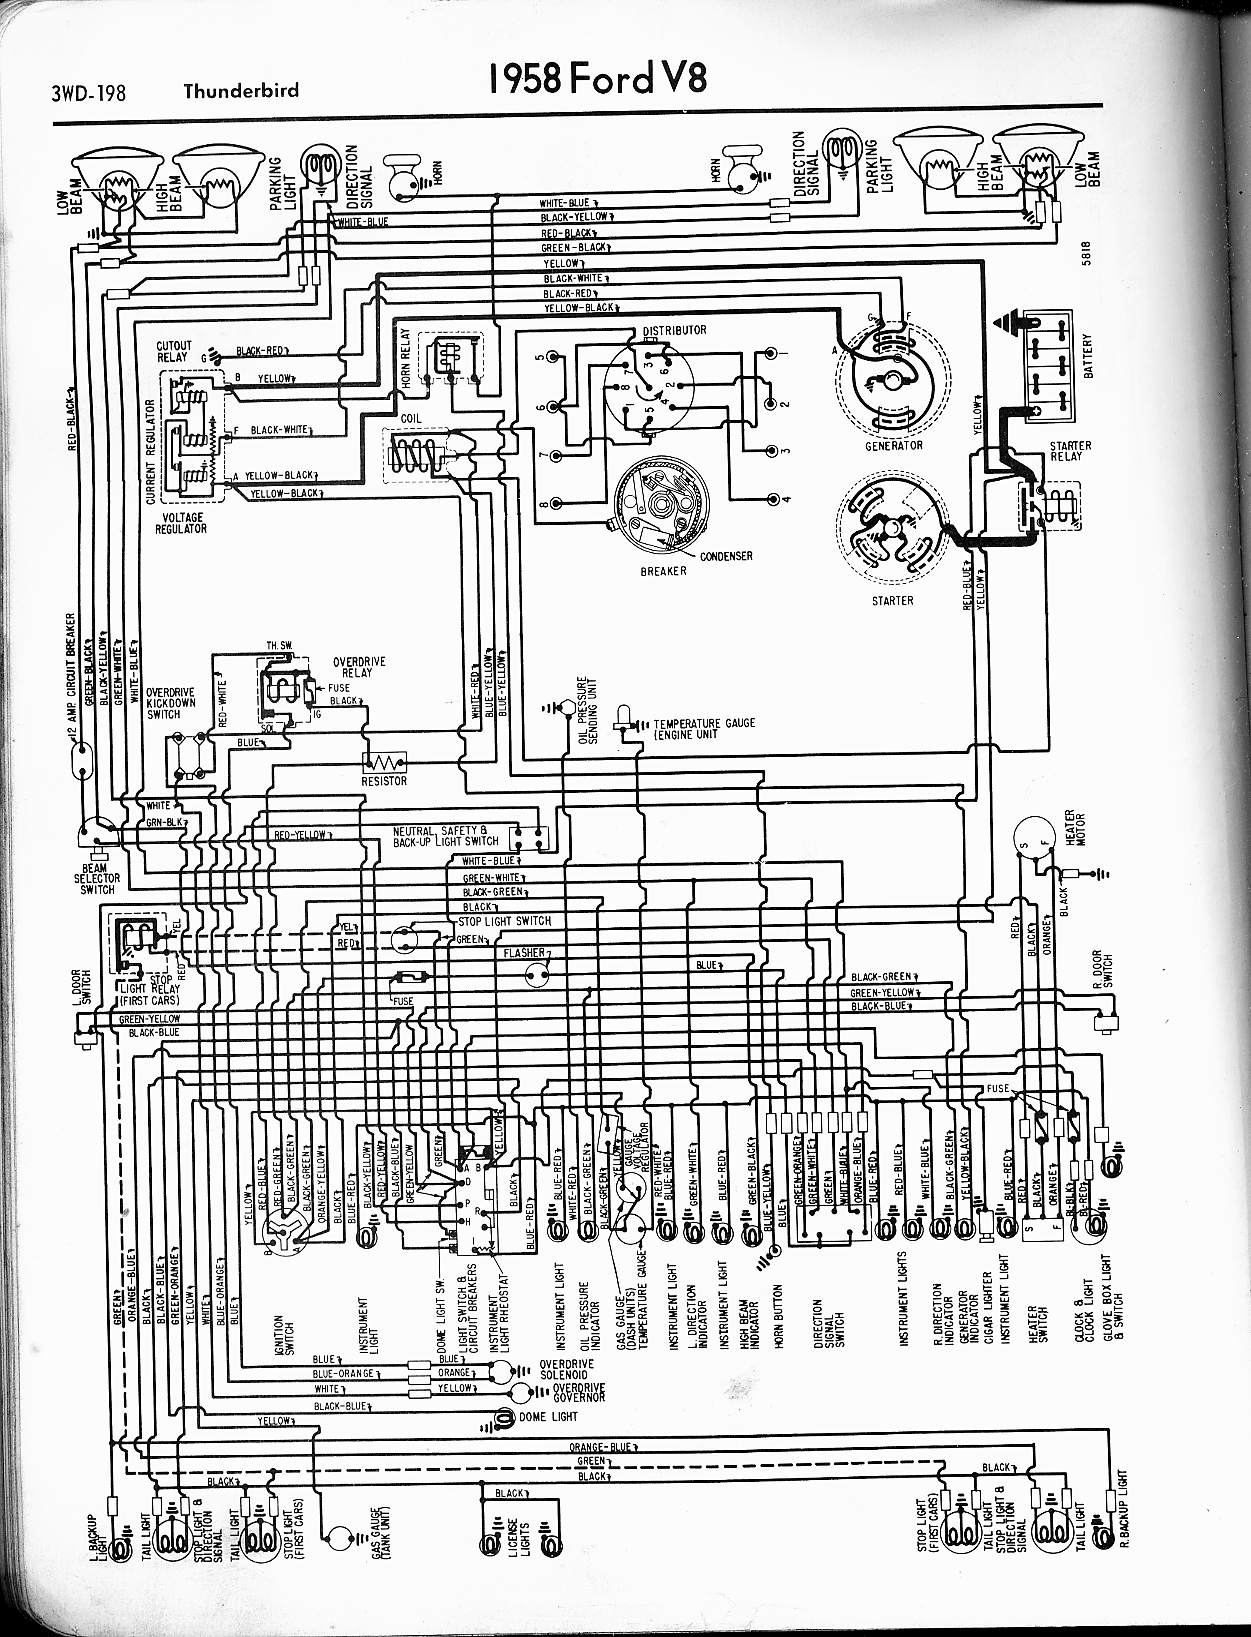 hight resolution of 1955 ford wiring schematic wiring diagram blog 1955 ford thunderbird wiring diagram 1955 ford wiring diagram